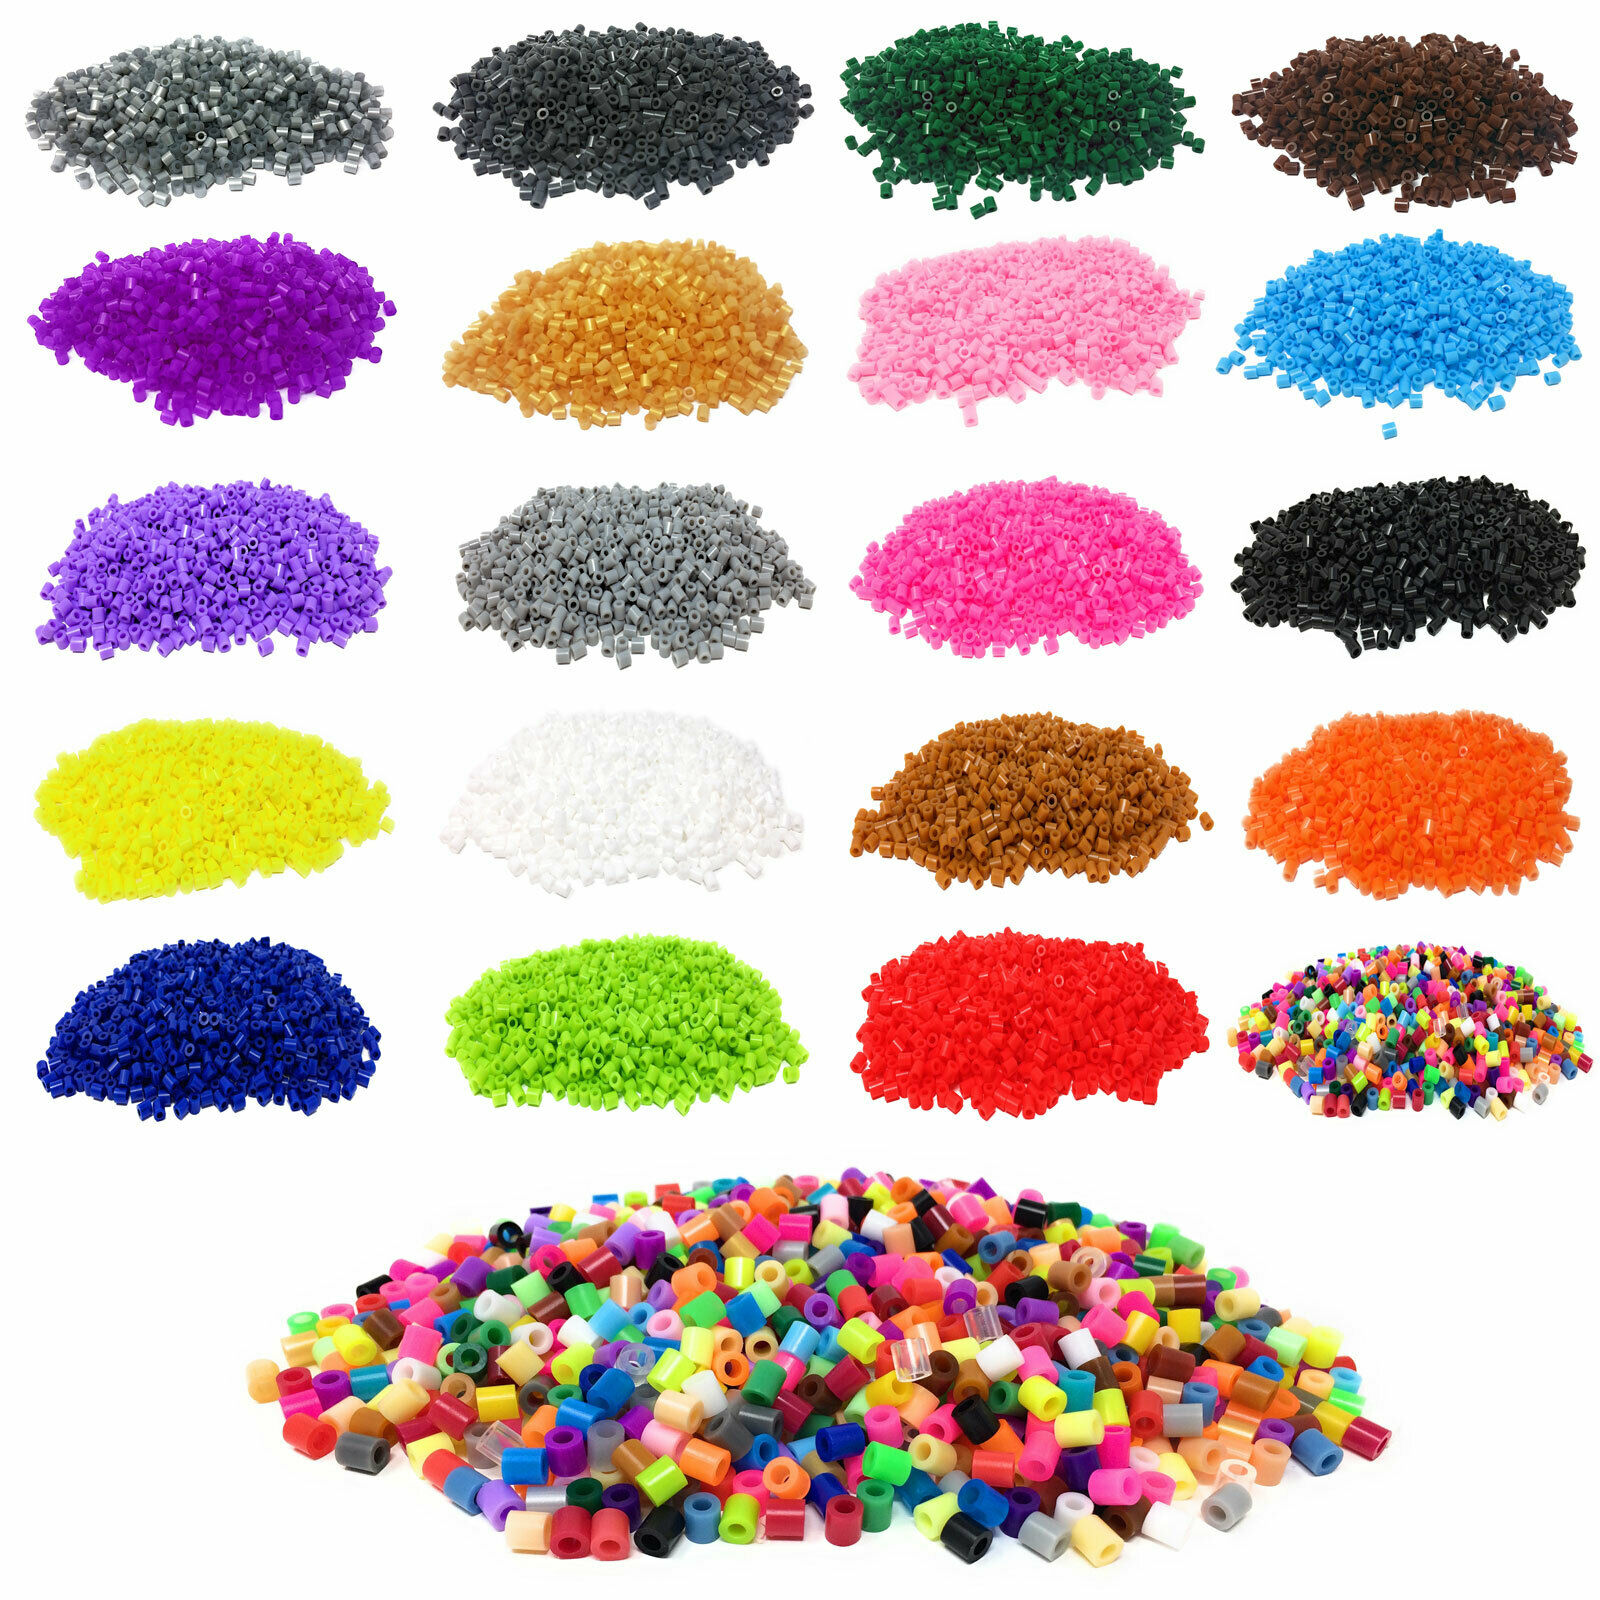 Fuse Beads 1000 Pack 5mm Midi Work Like Hama Beads Mixed Iron Kids Arts & Crafts Educational Toys